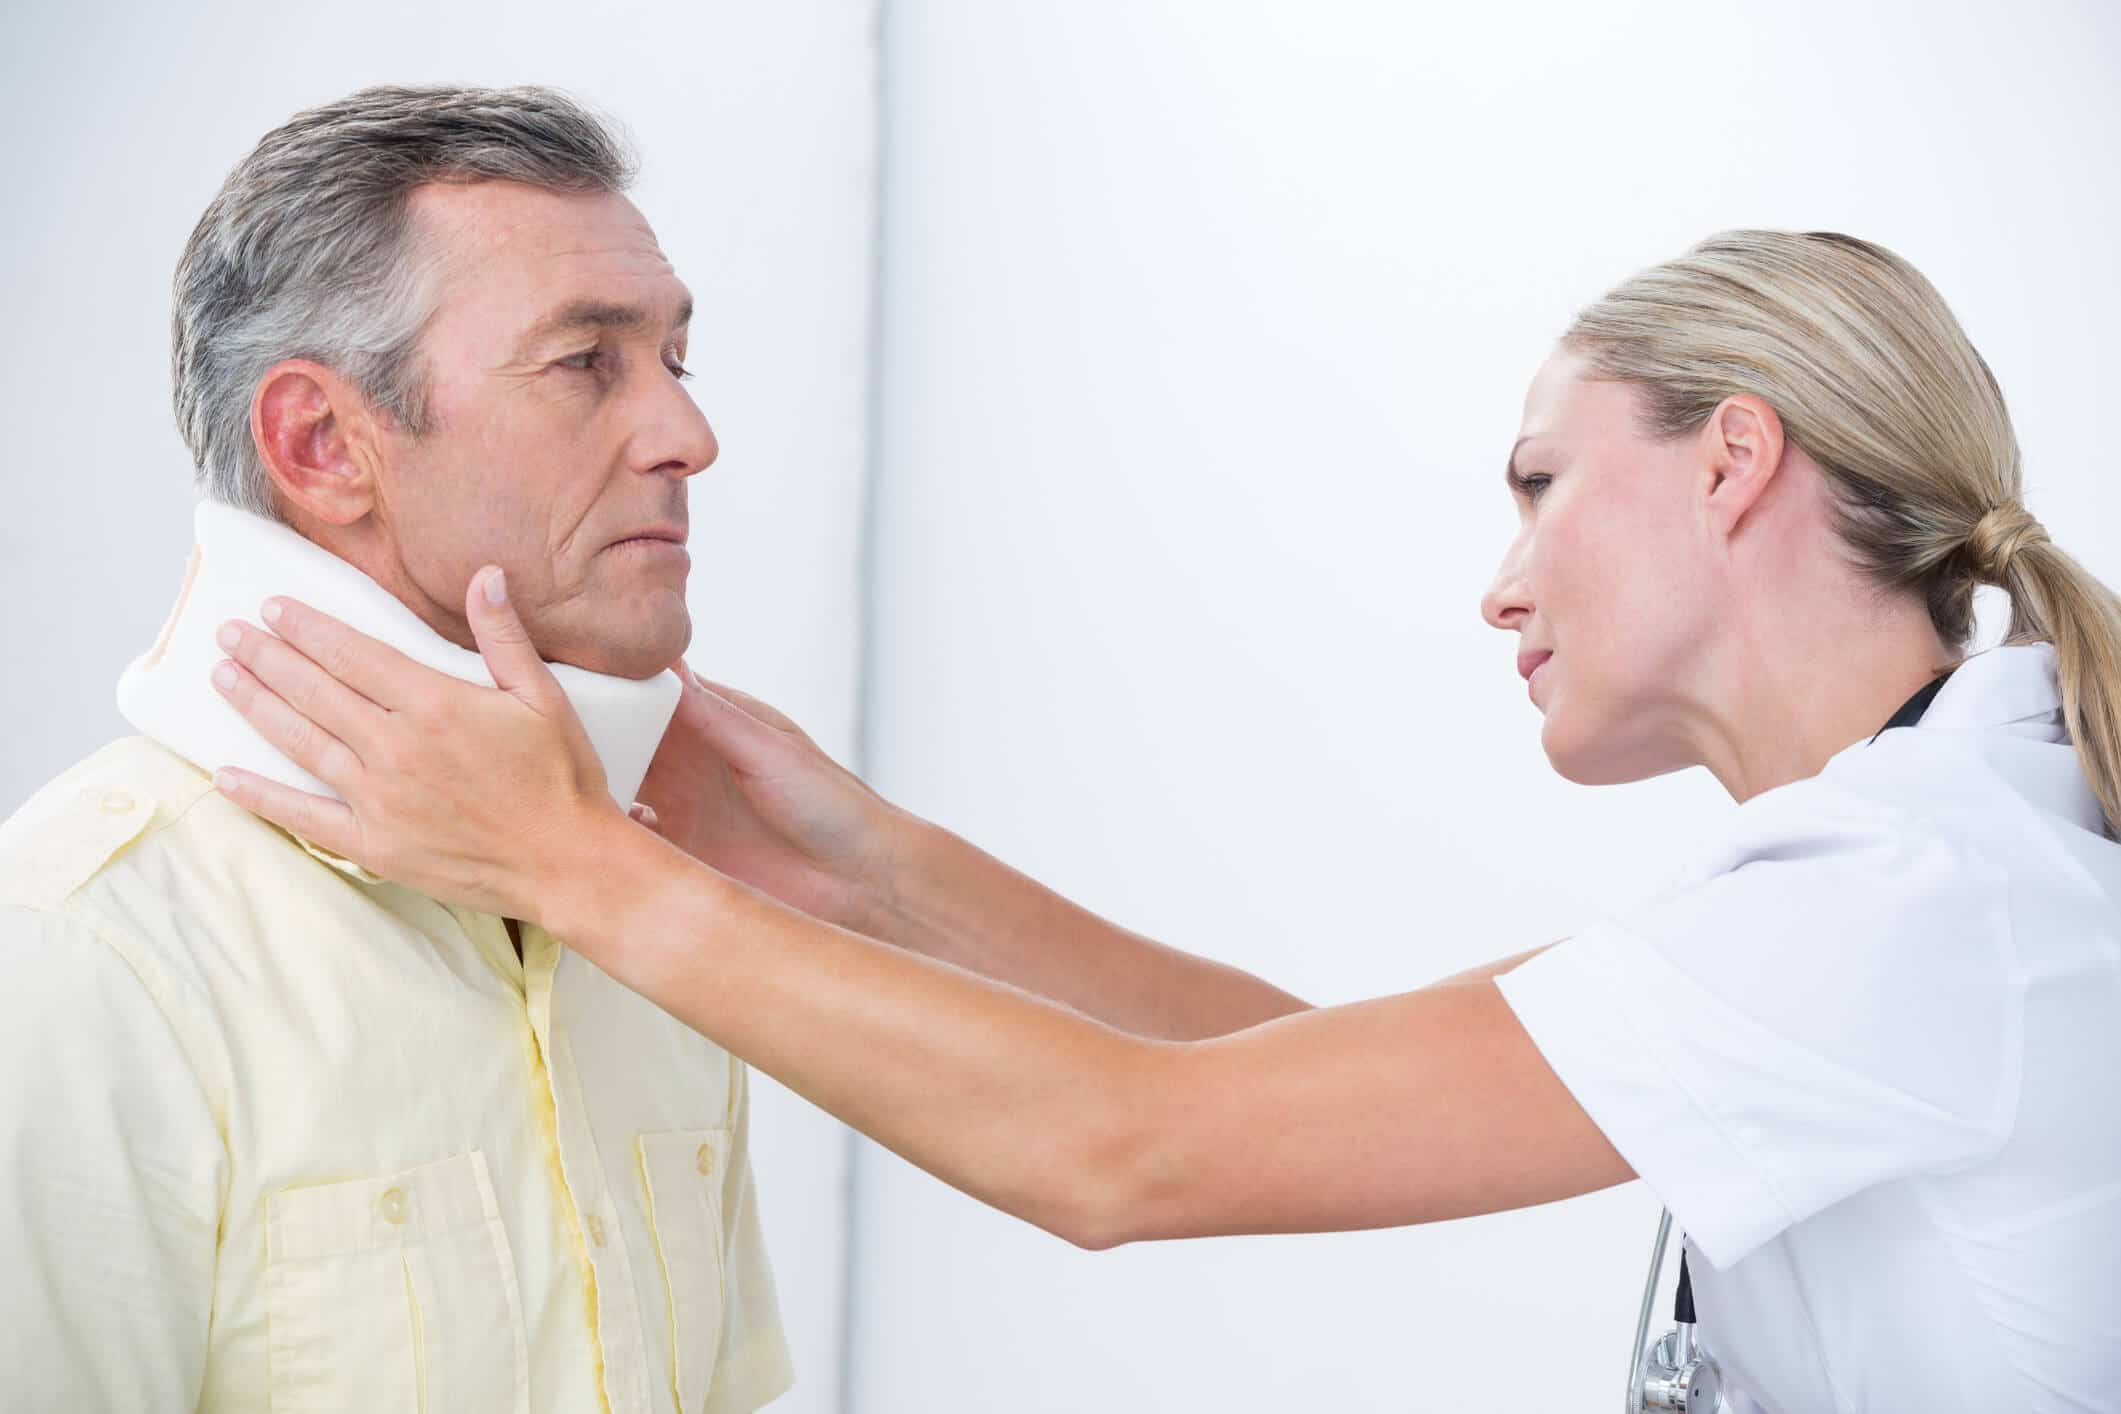 Male patient being fitted with a neck brace